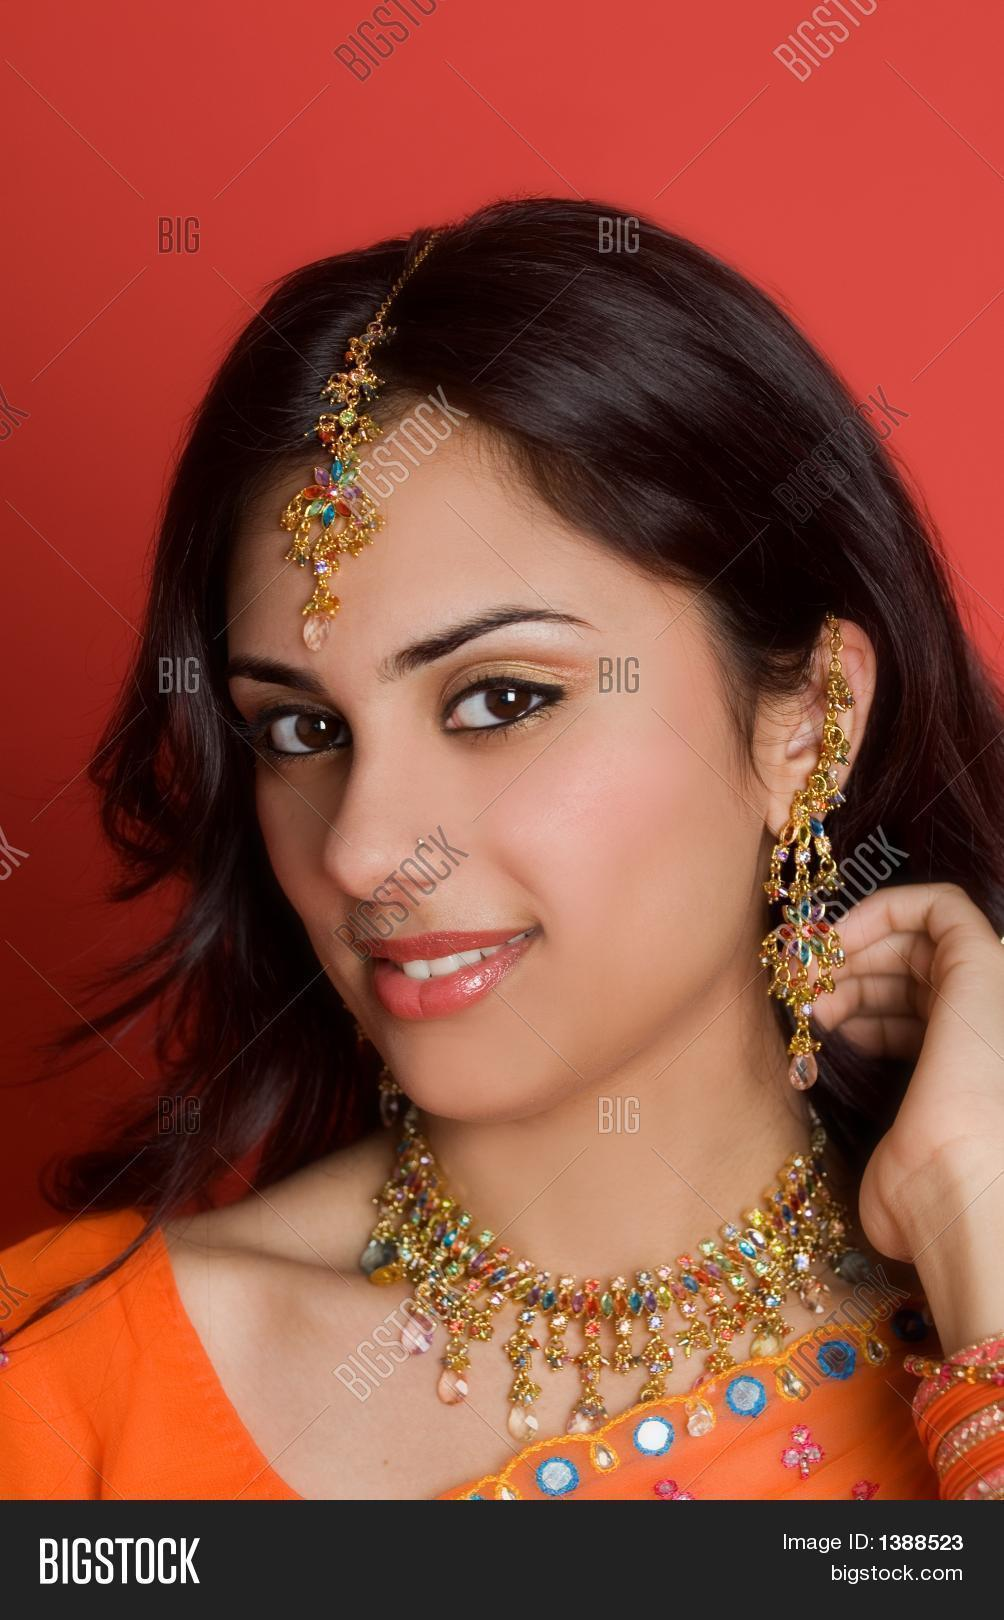 hindu single women in sardinia Asian dating events and apps portal for indian singles living in the uk we cater for british asian dating who are from an indian origin.